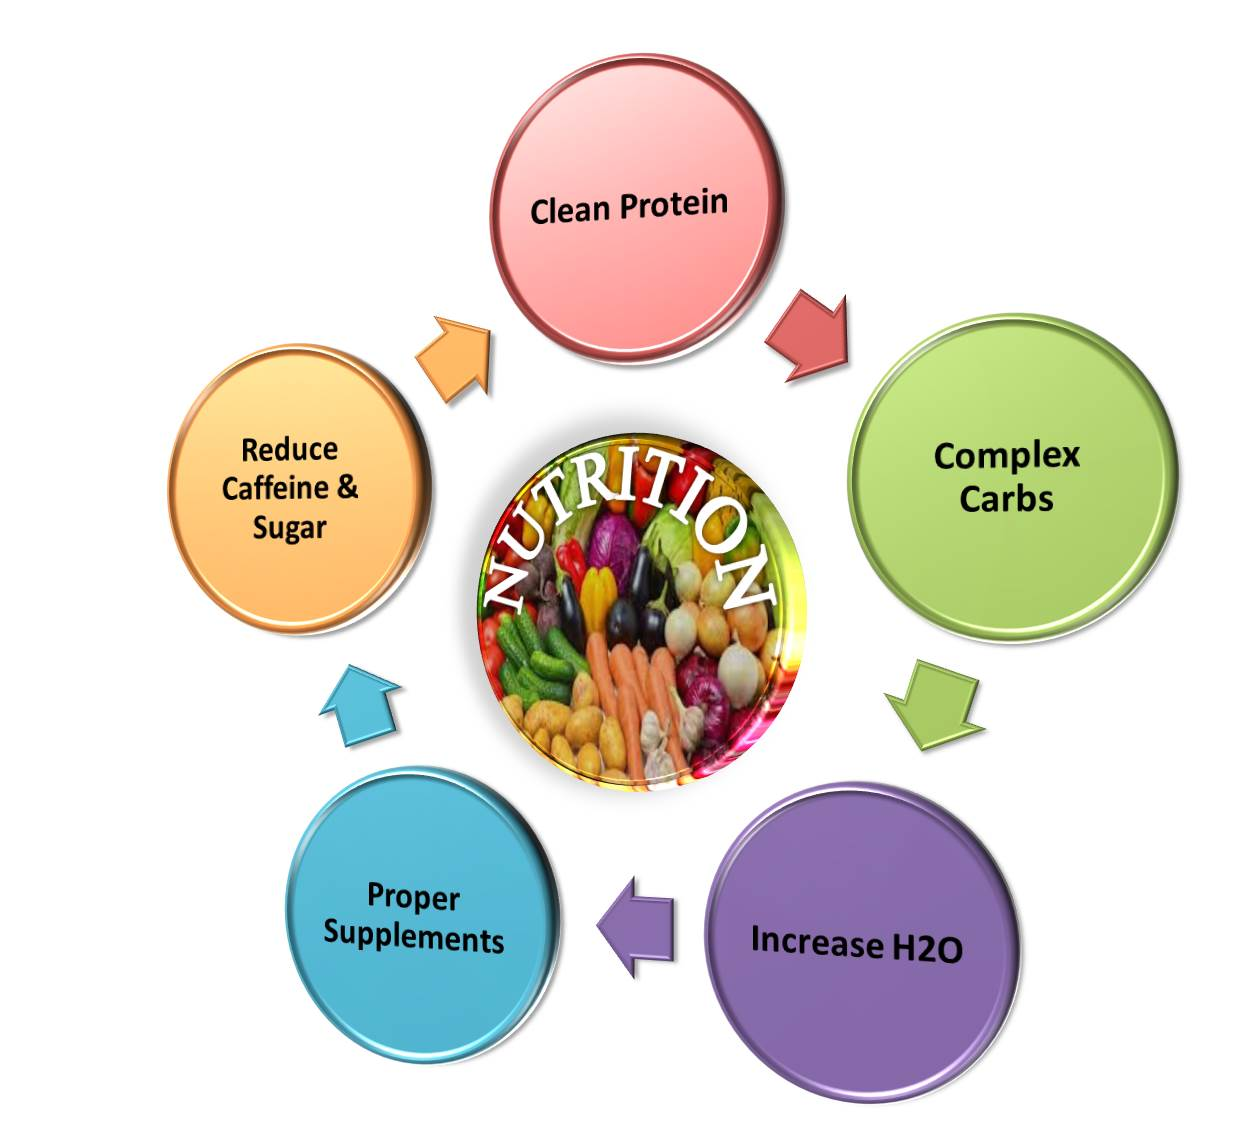 Nutrition and addiction total health guidance